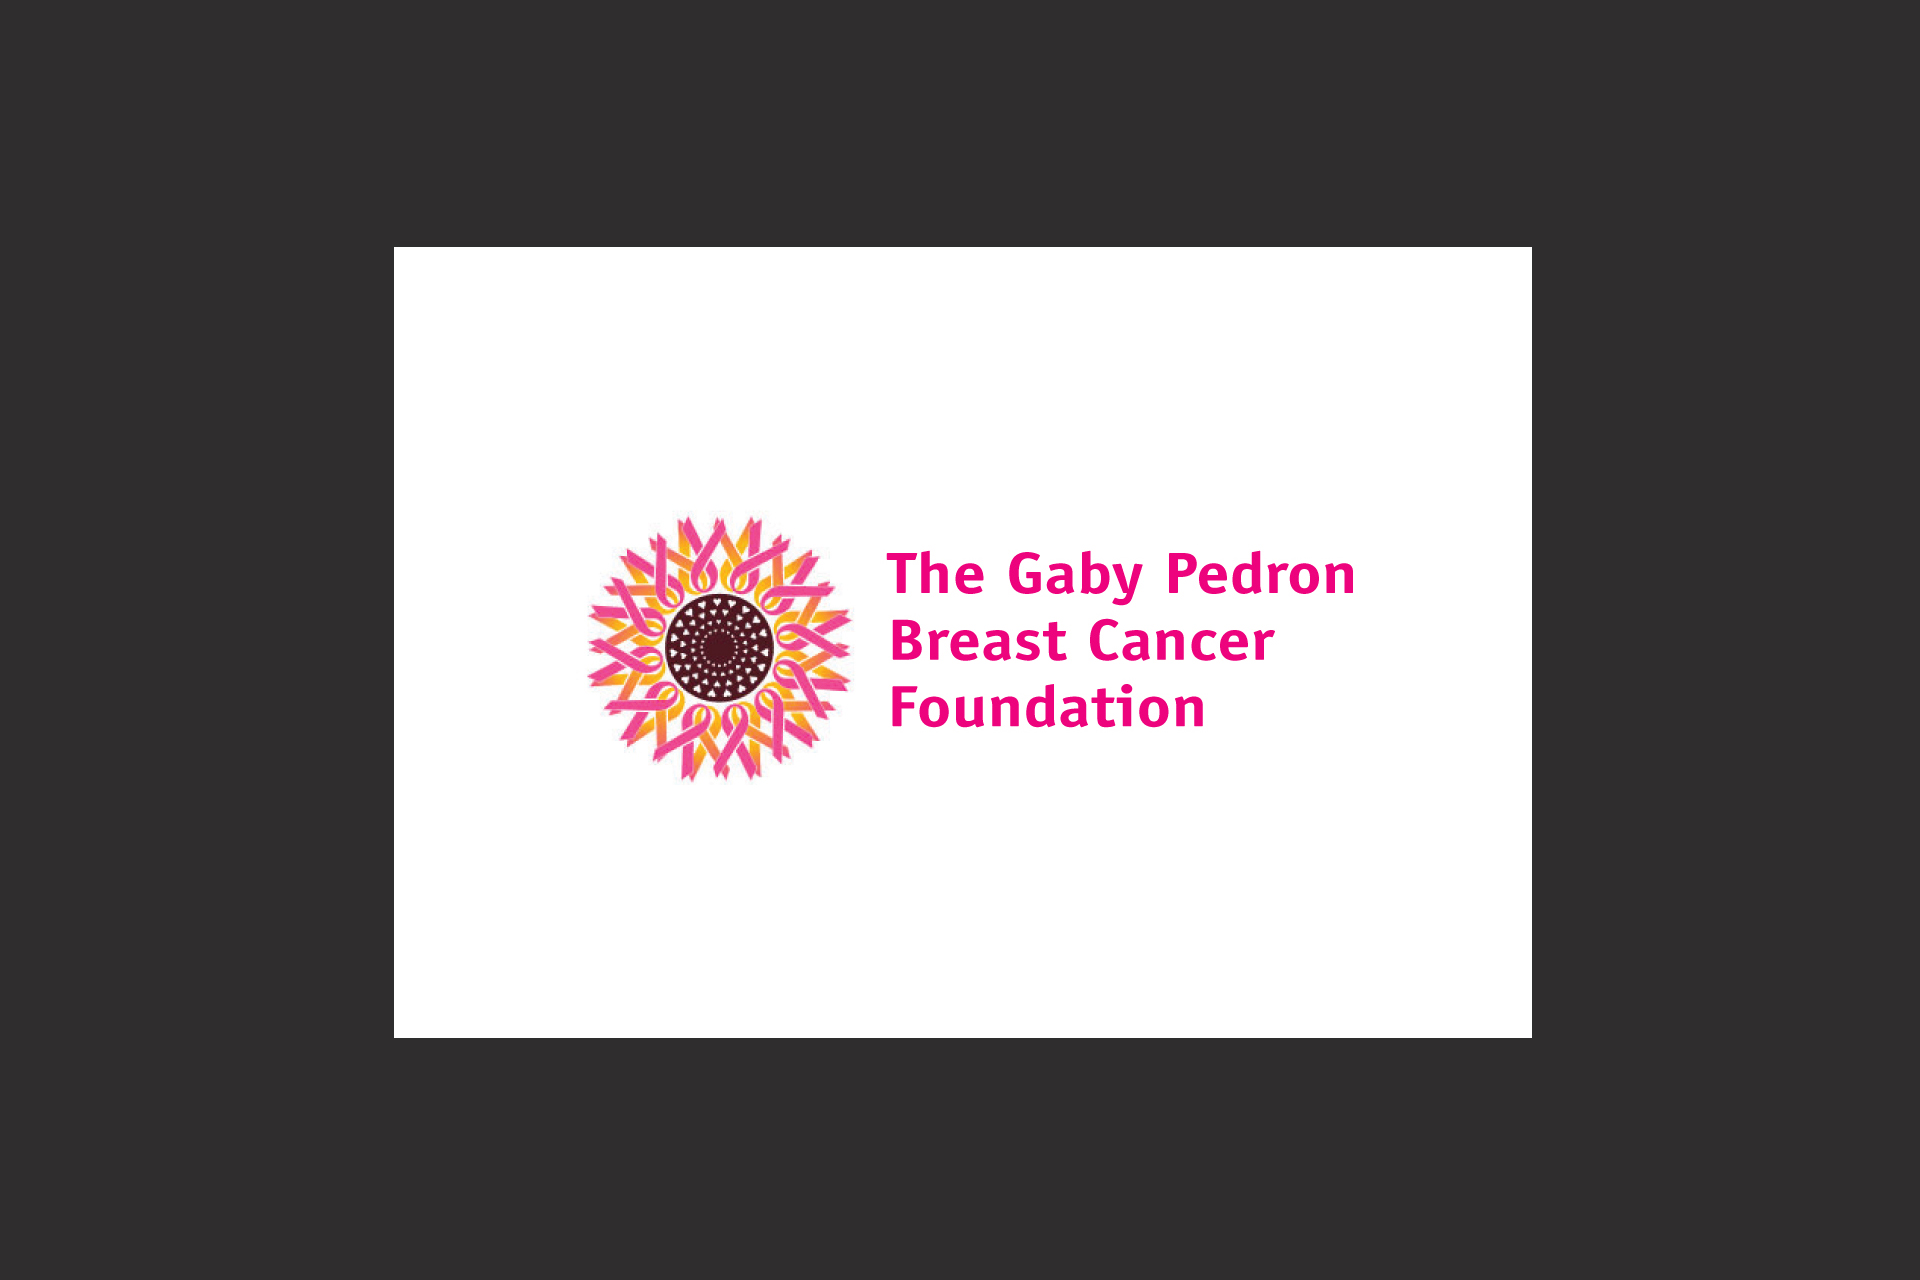 Gaby Pedron Breast Cancer Foundation log